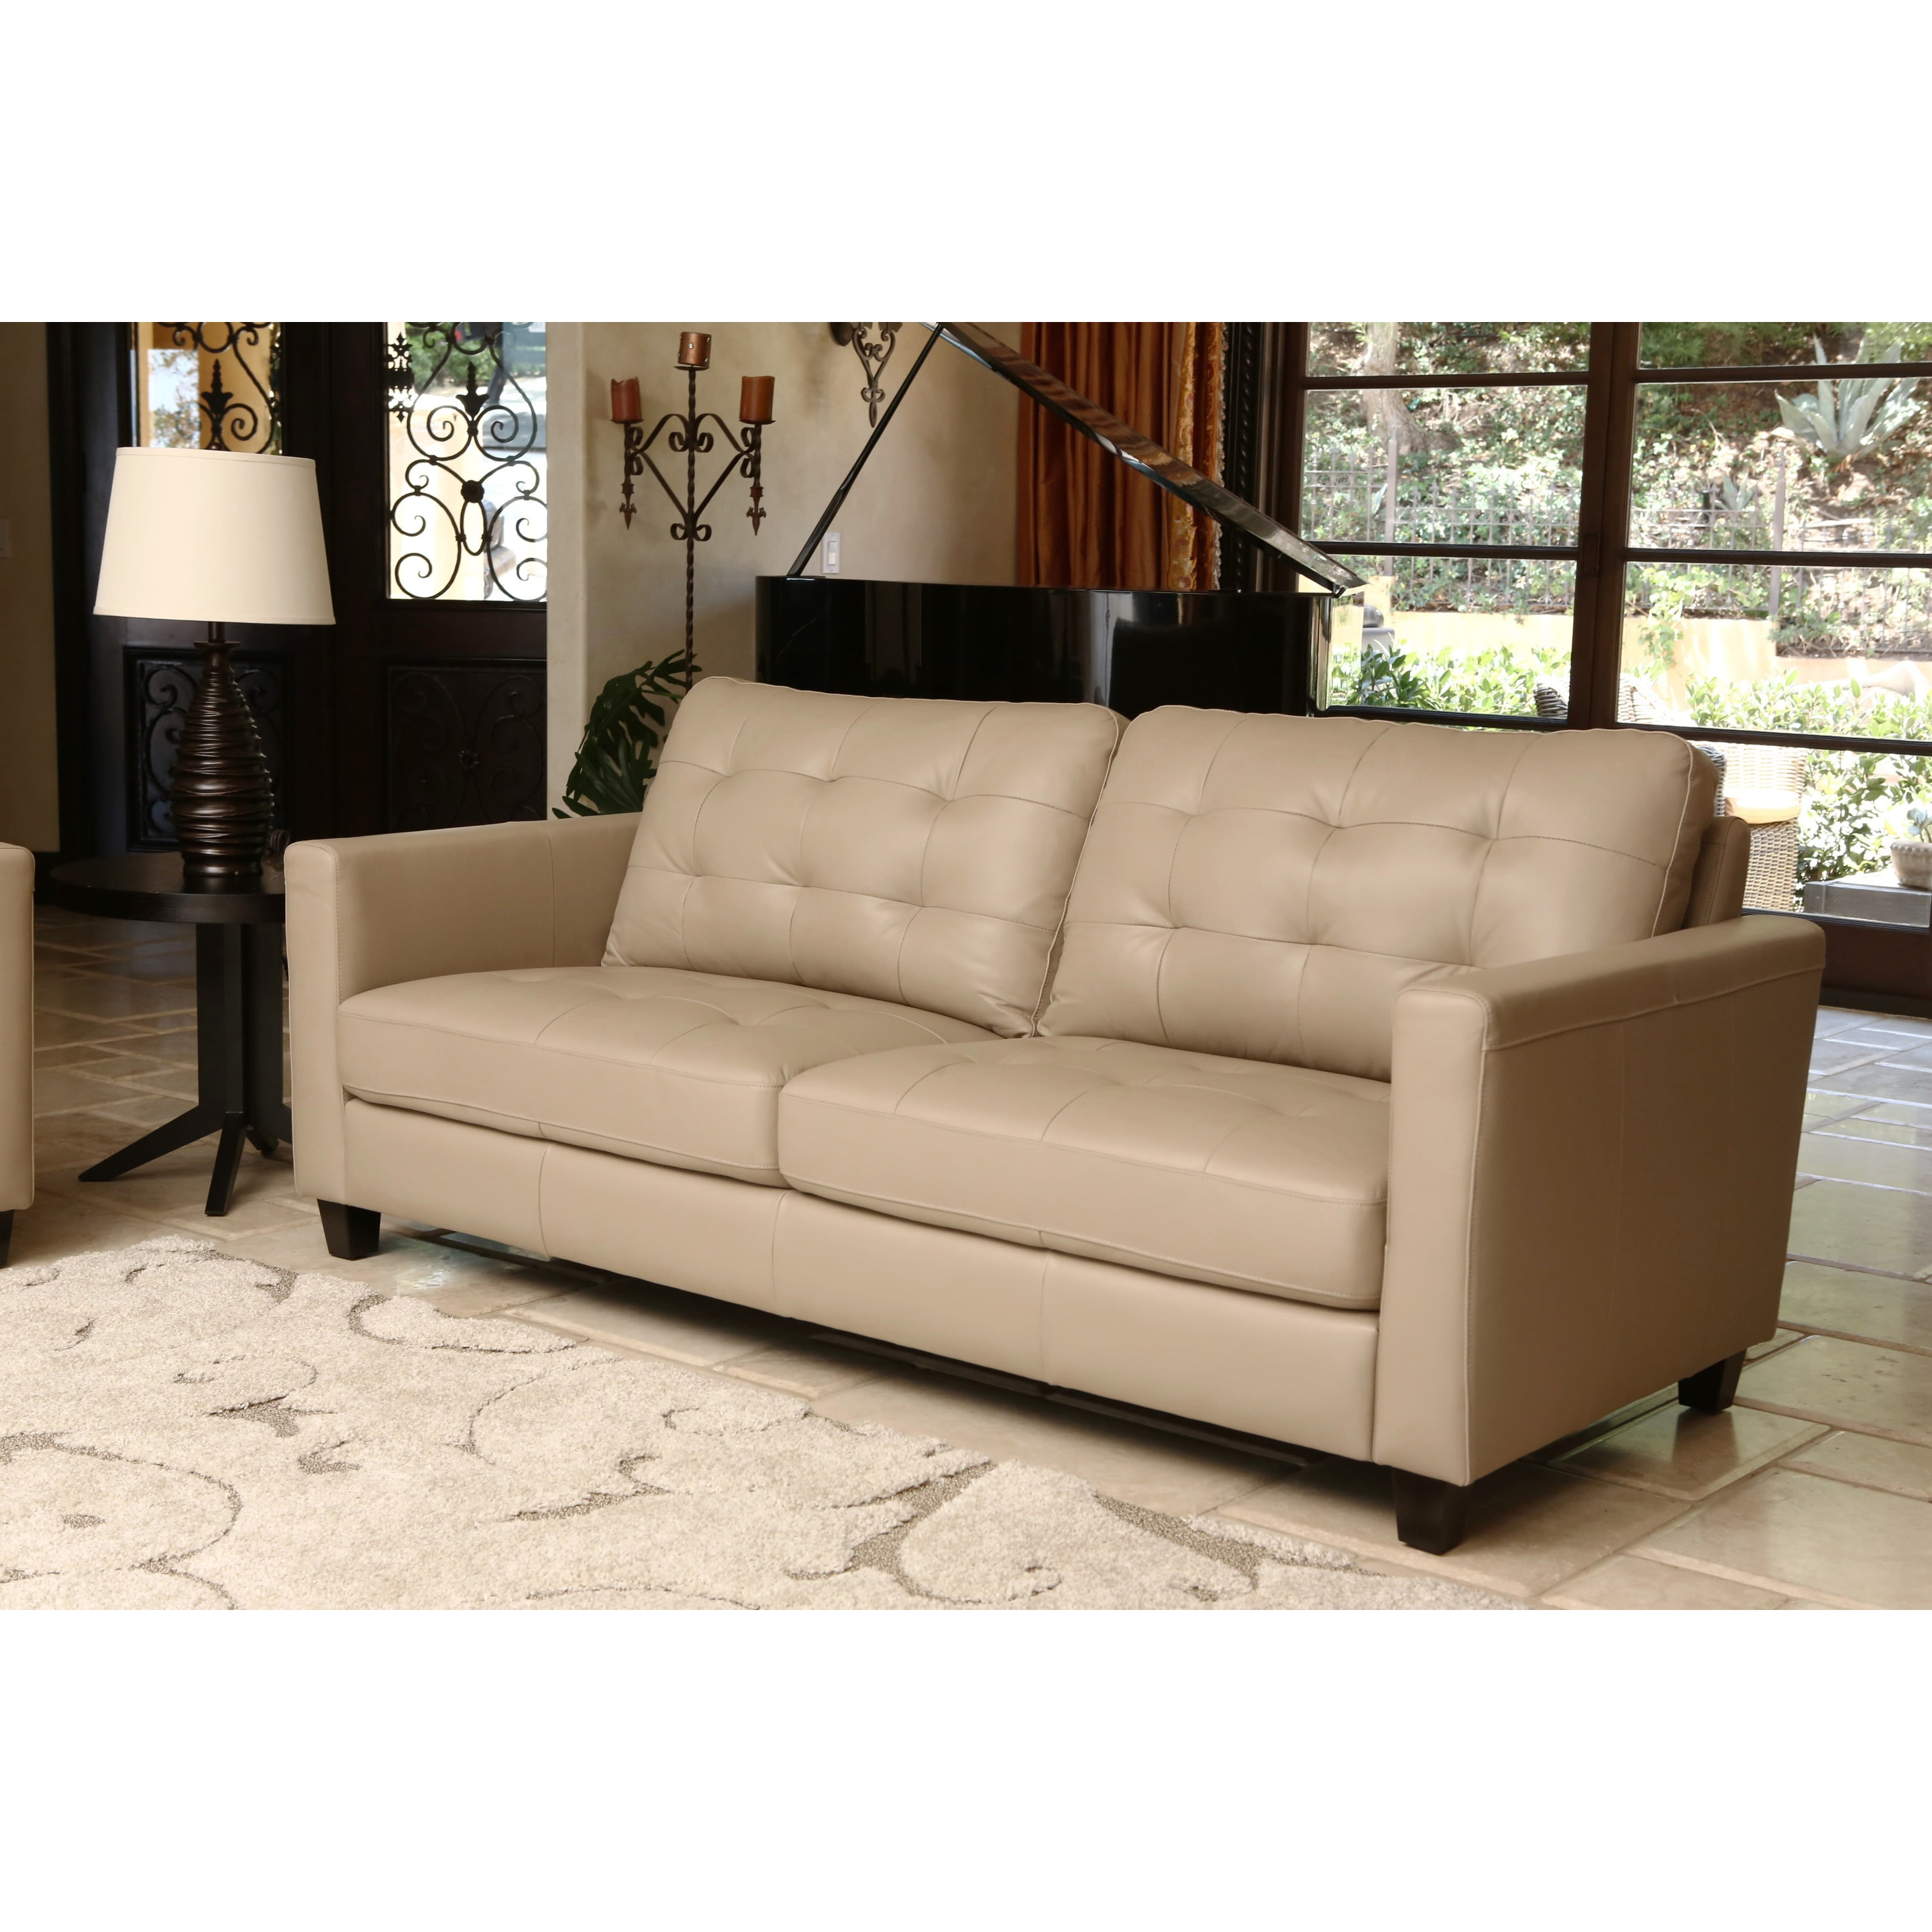 leona 3 seater recliner sofa upholstery services malaysia leather home the honoroak